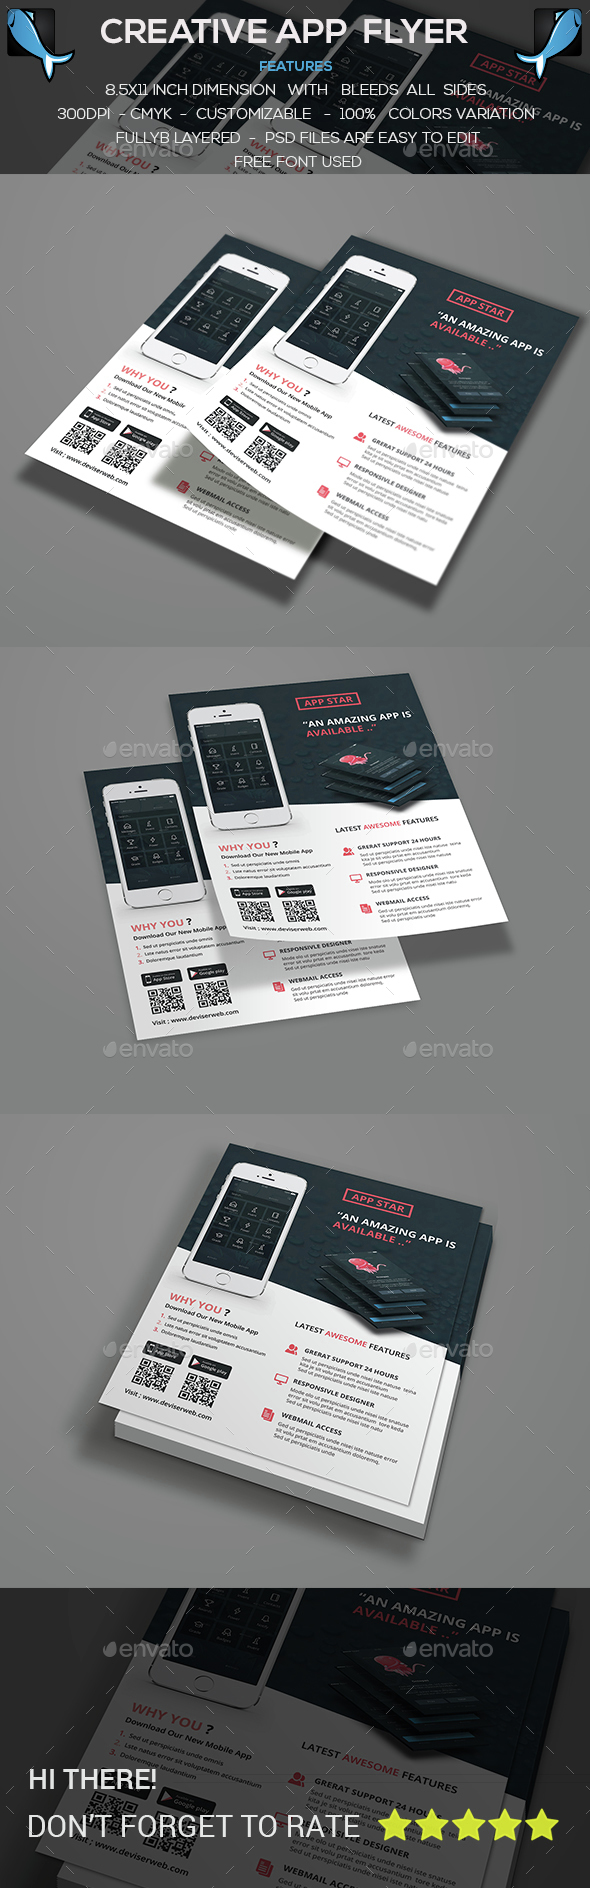 Mobile App Flyer - Corporate Flyers